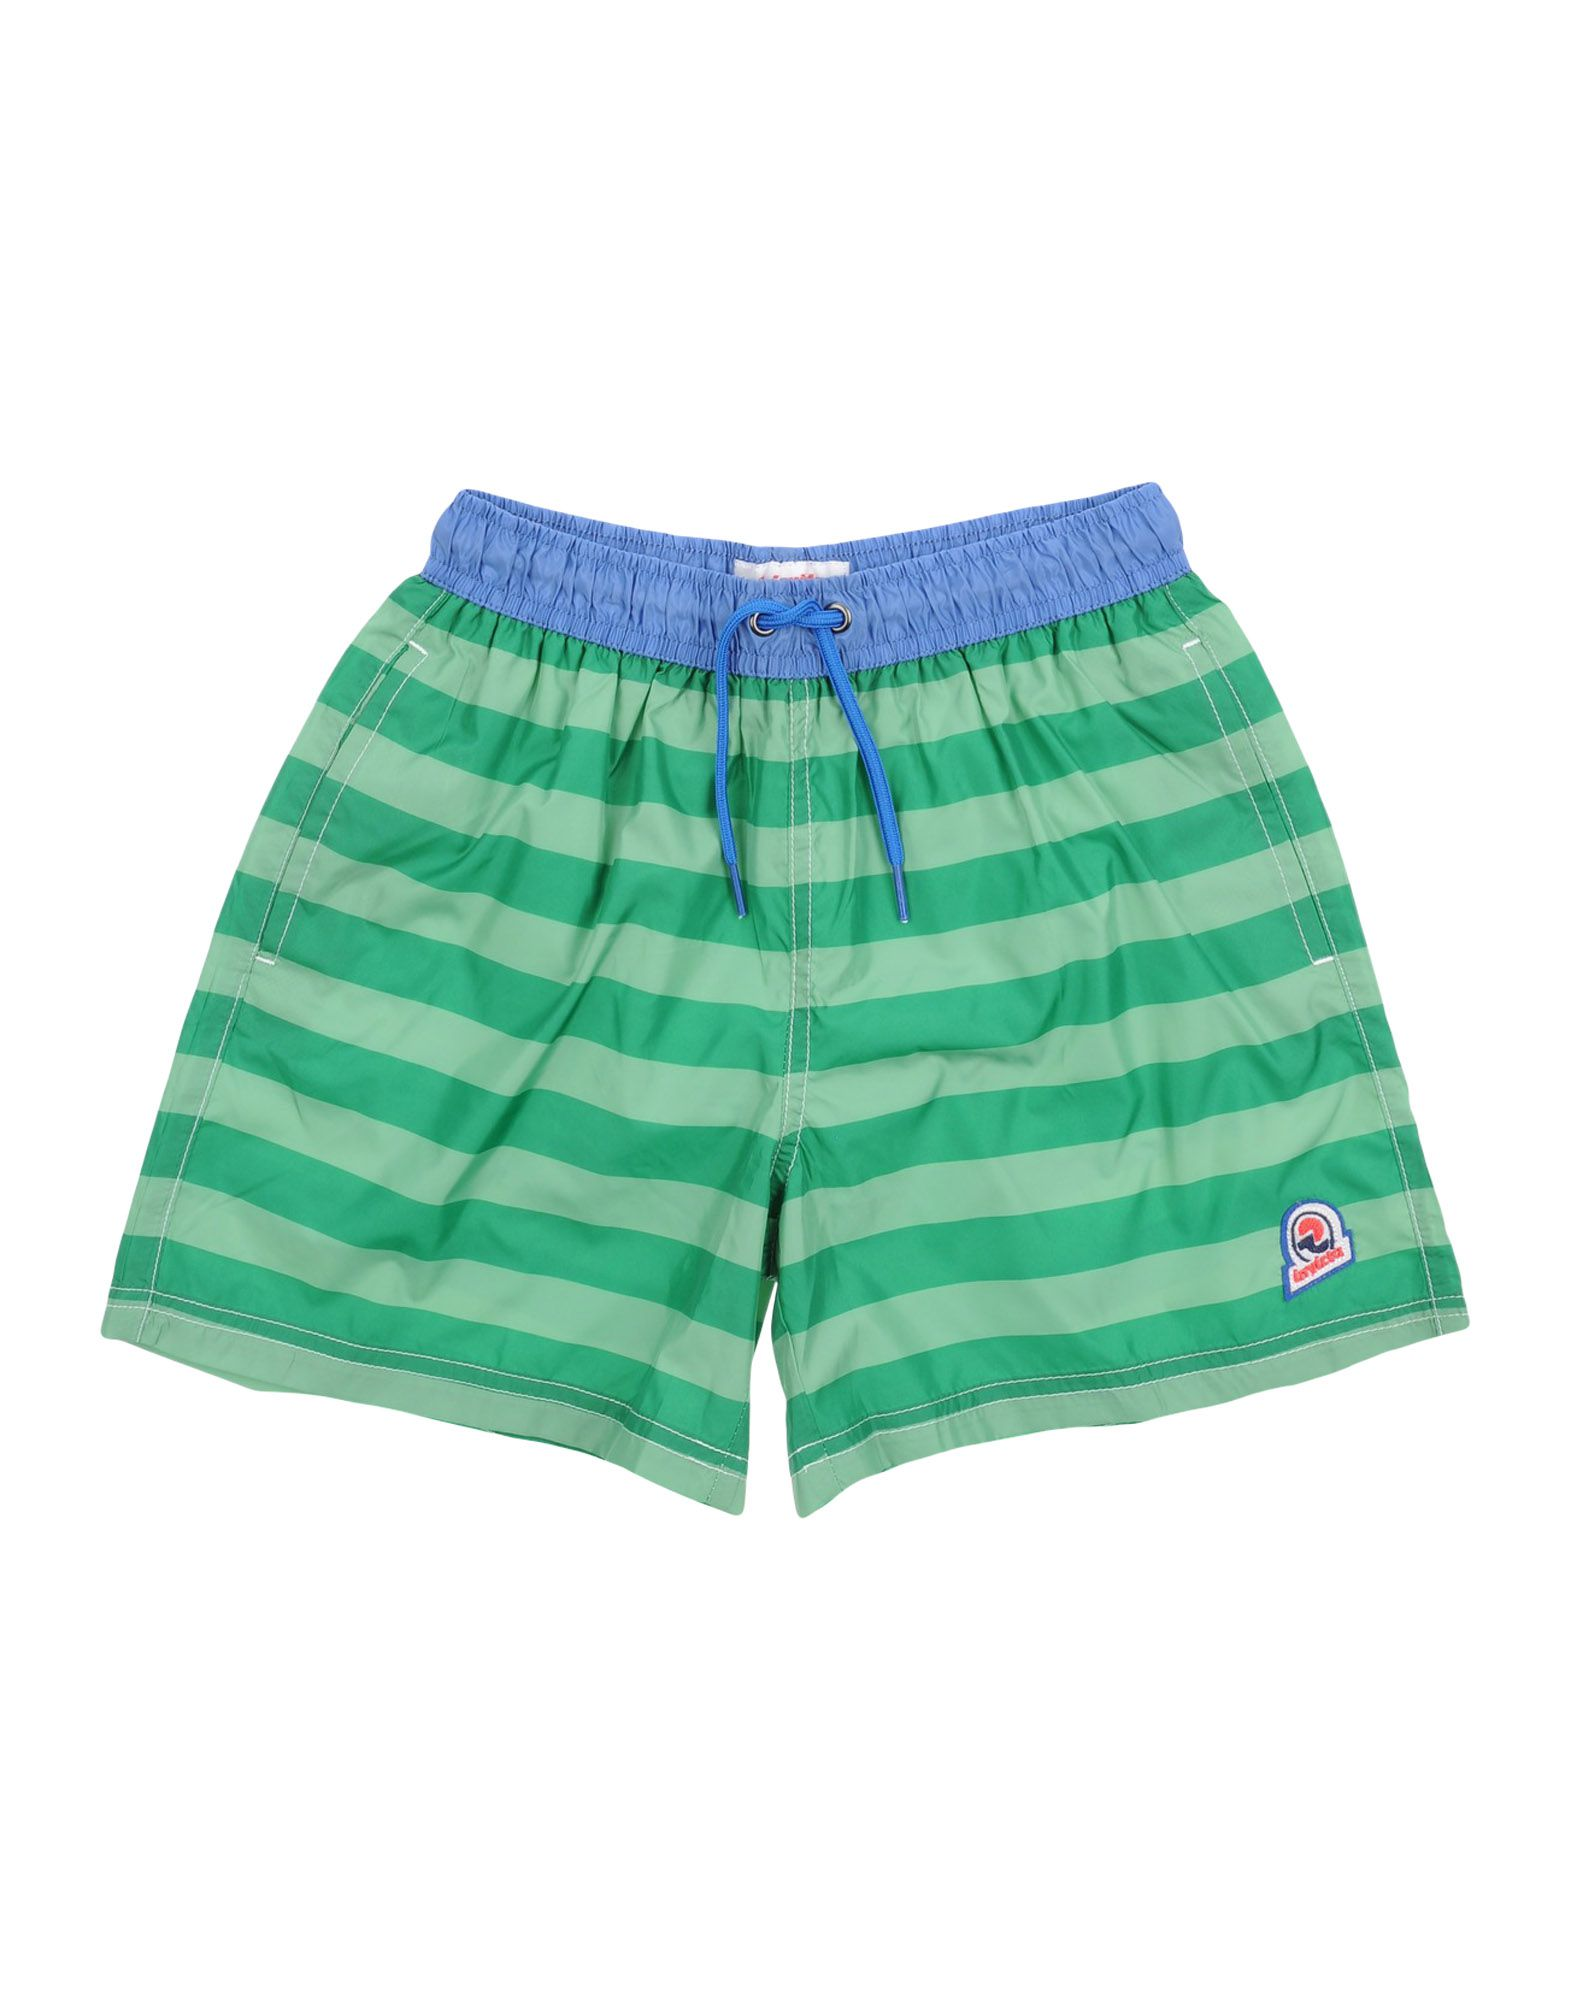 INVICTA Swim trunks